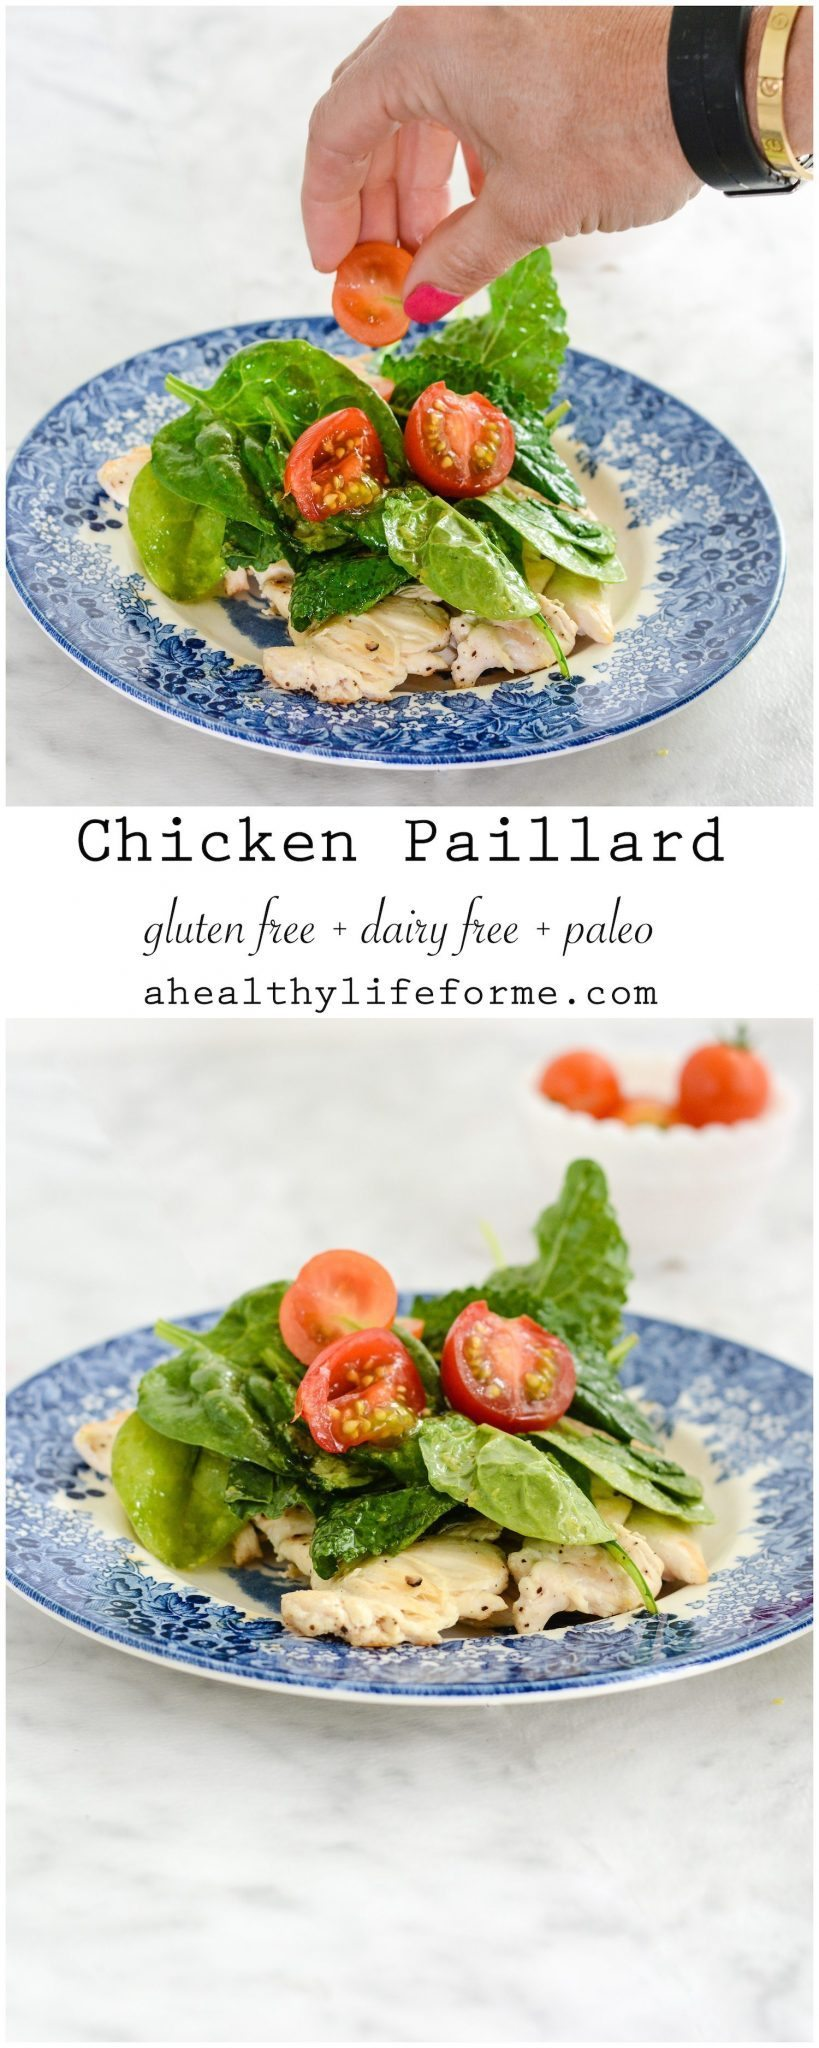 Chicken Paillard With Lemon Salad A Healthy Life For Me